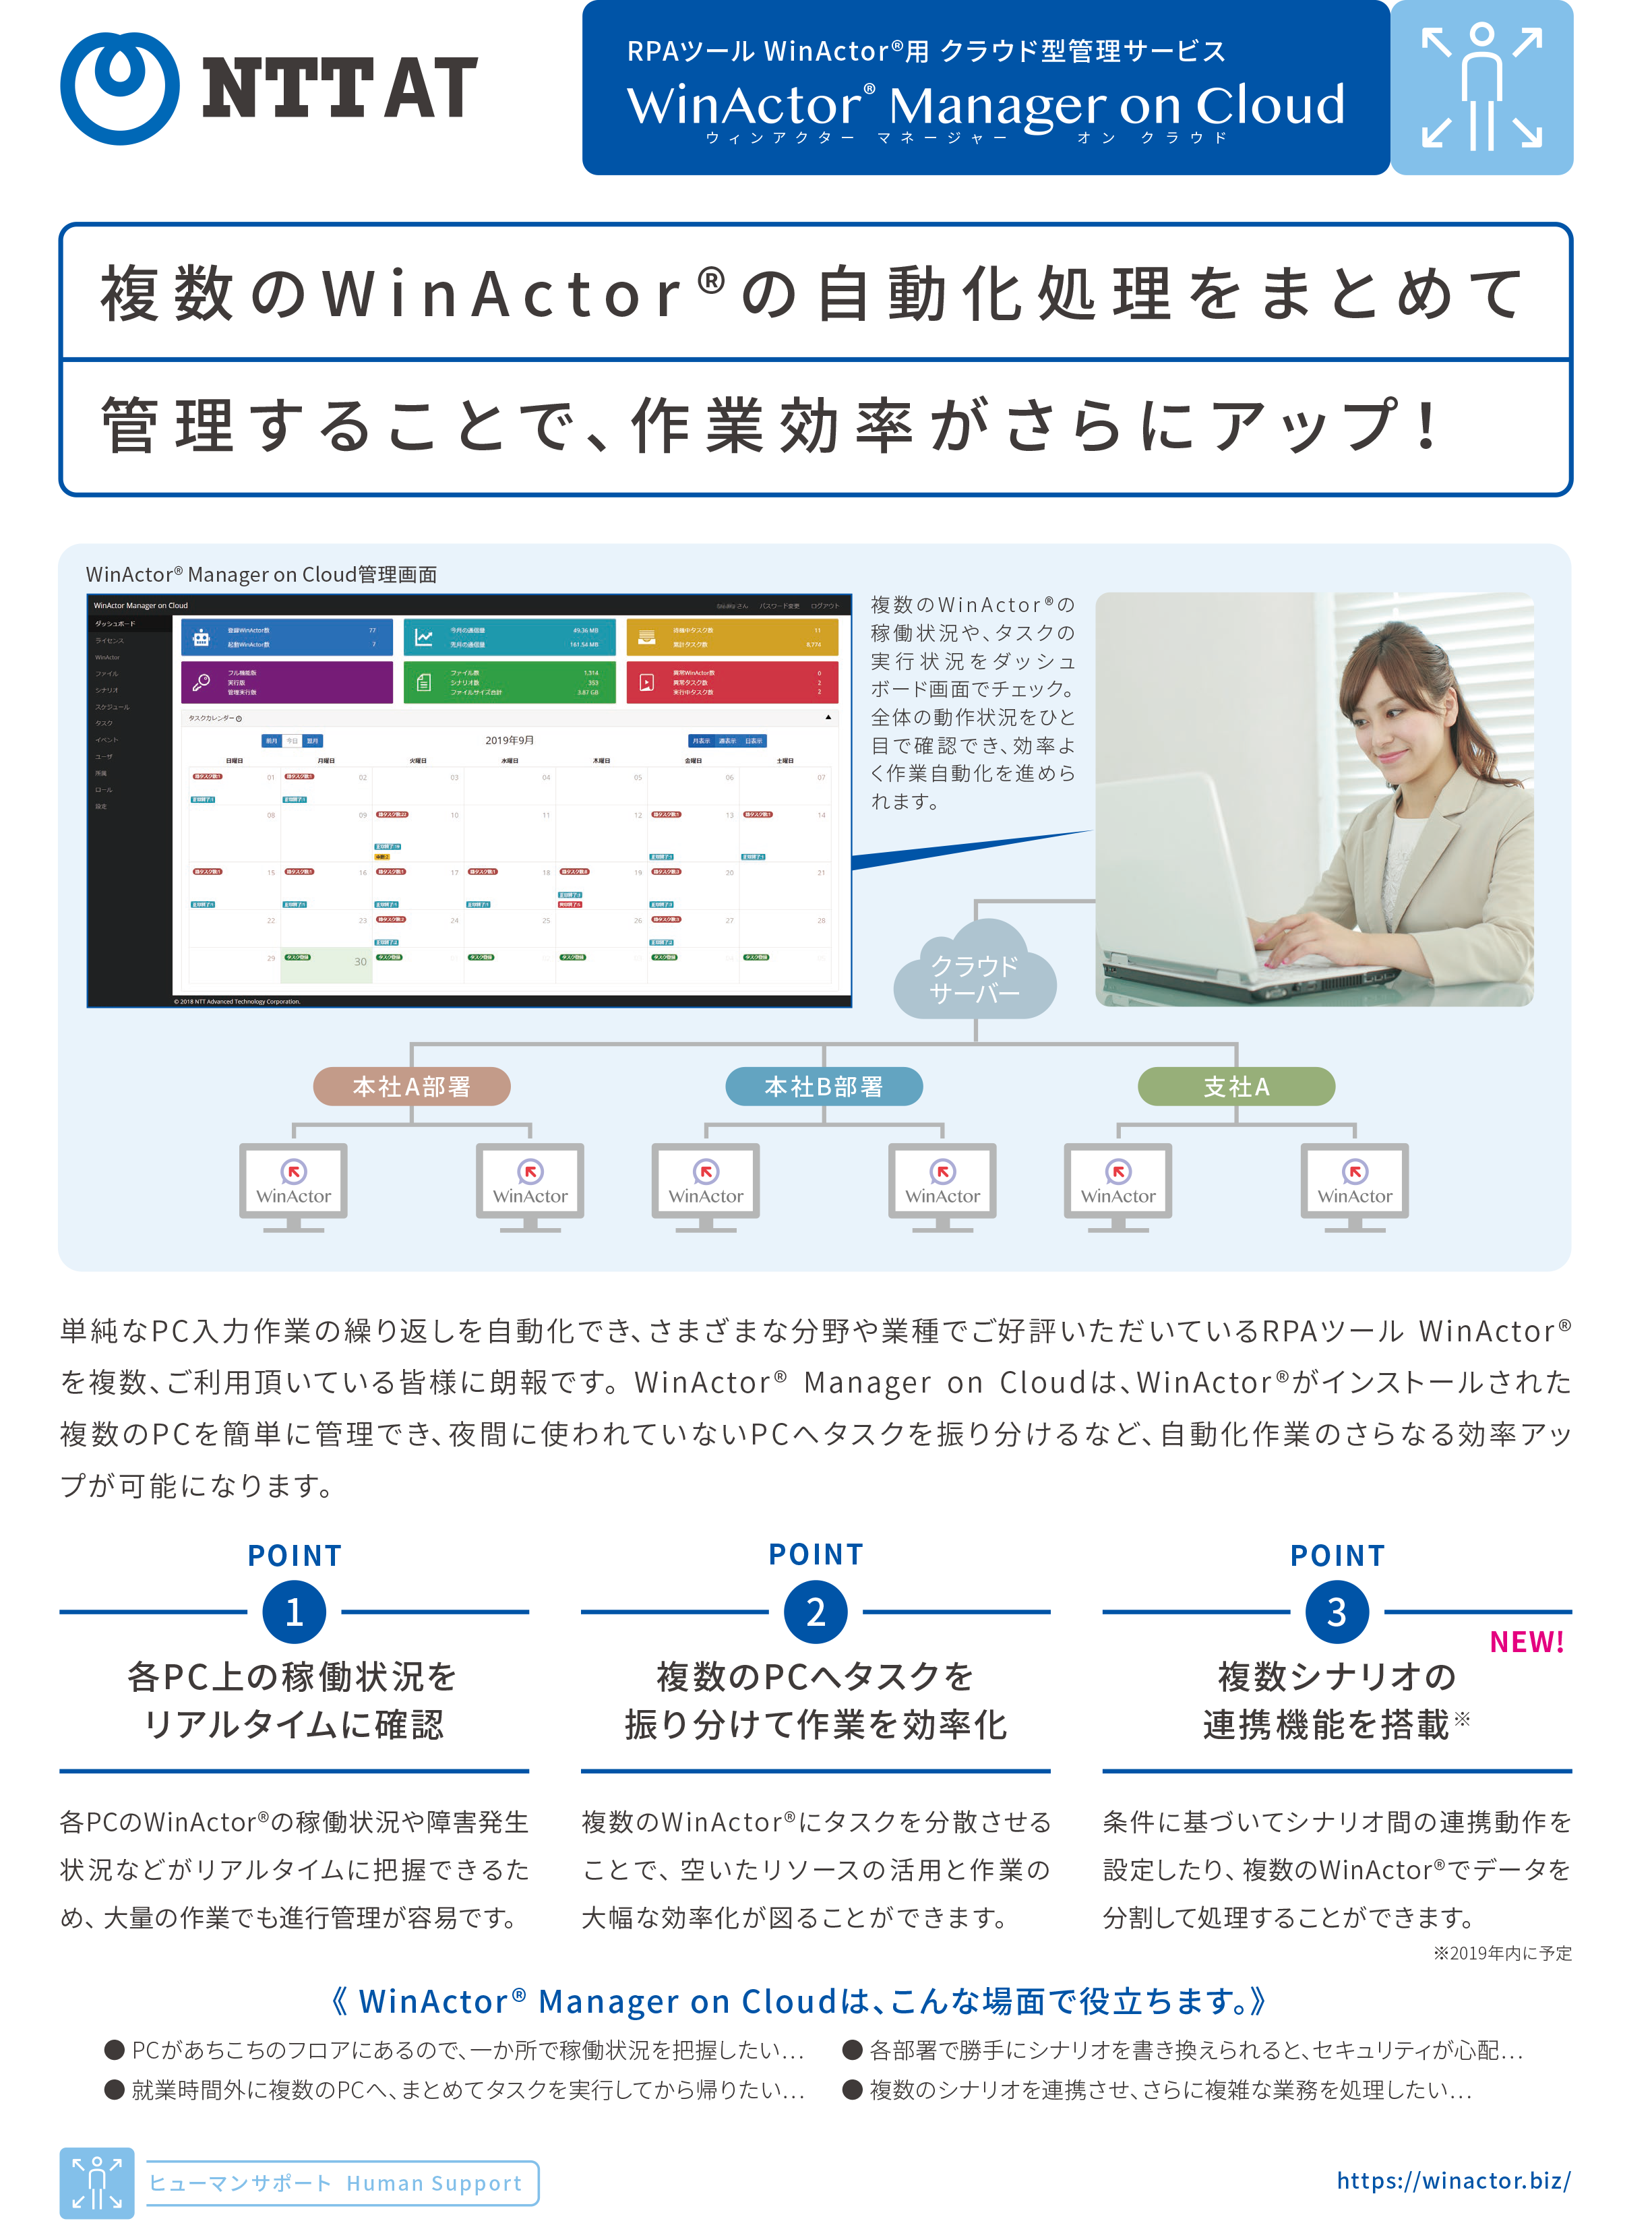 WinActor Manager on Cloud パンフレット